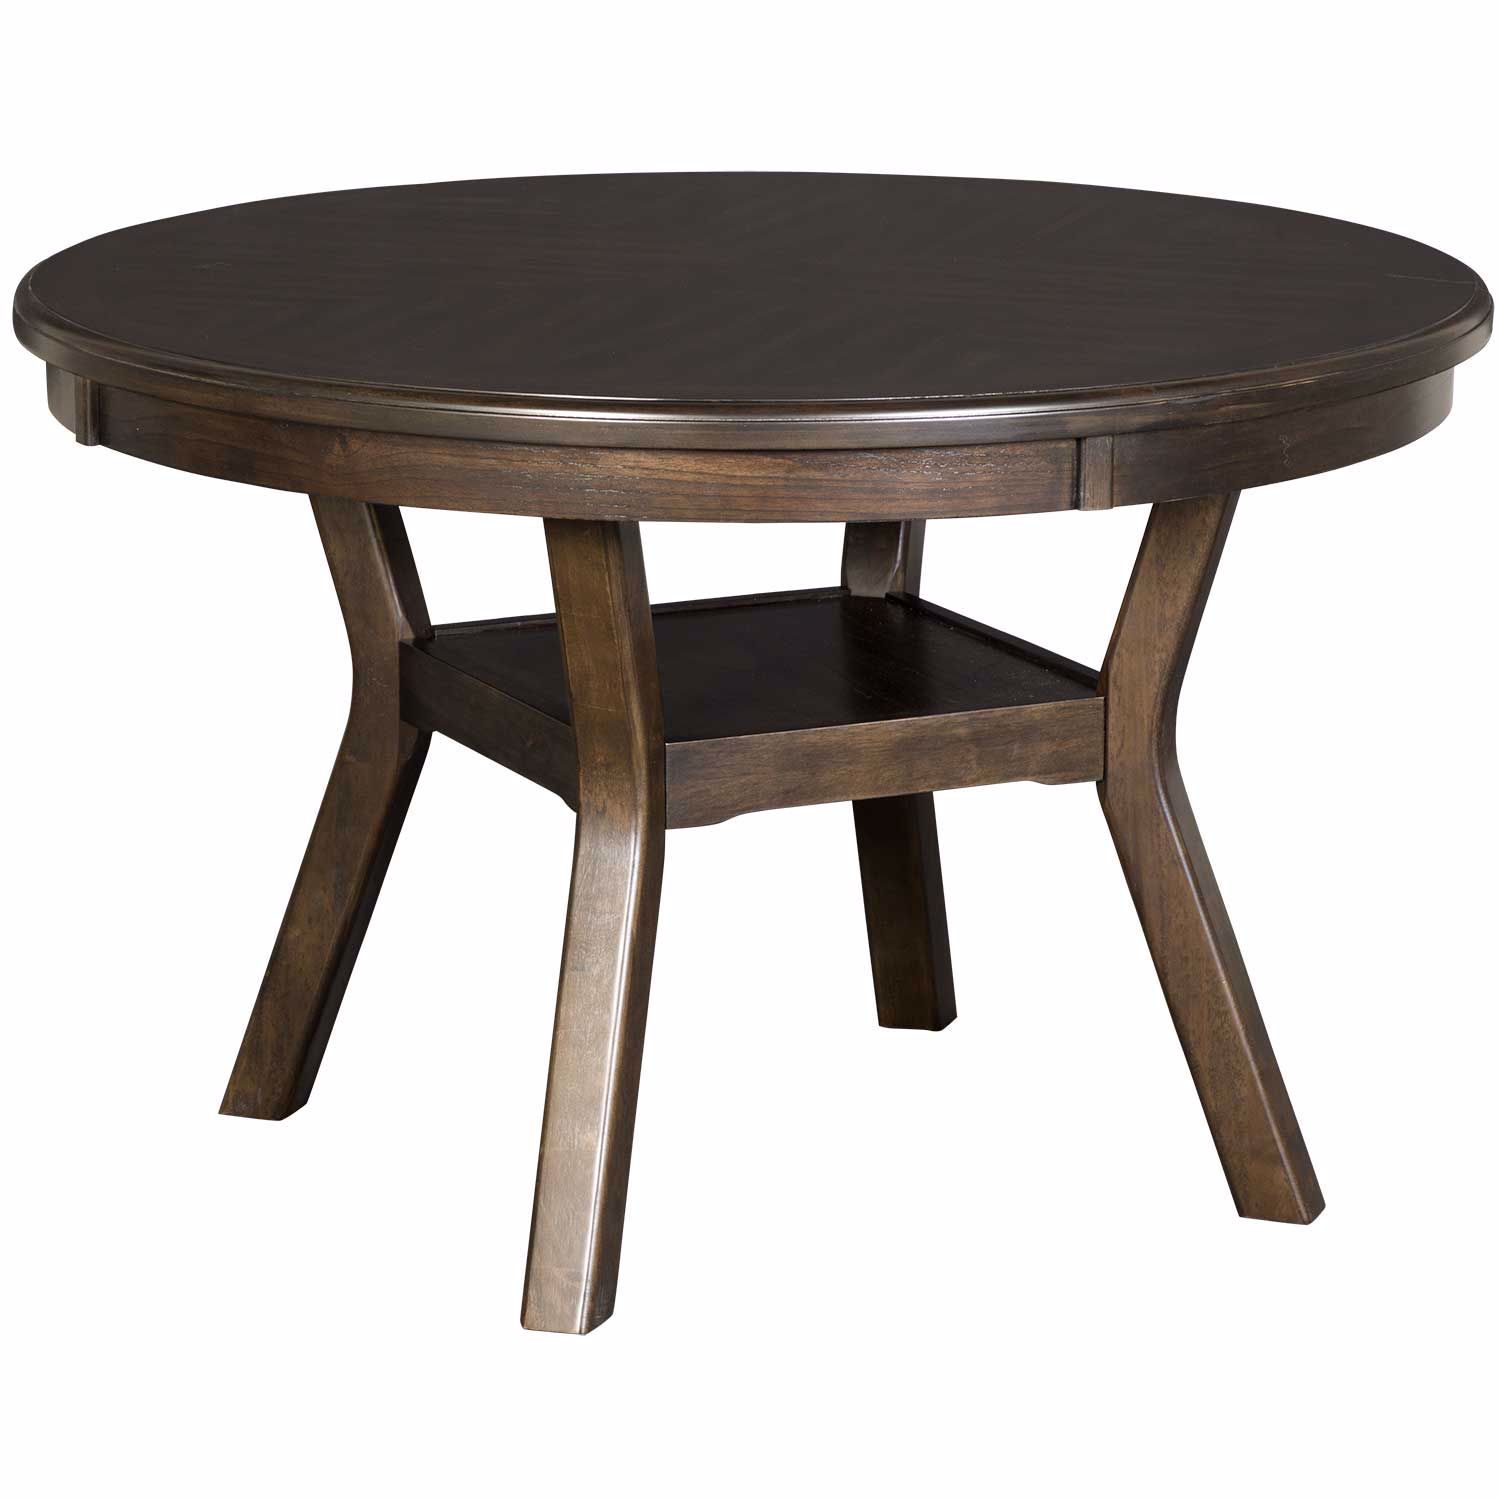 "Picture of Amherst 47"" Round Dining Table"